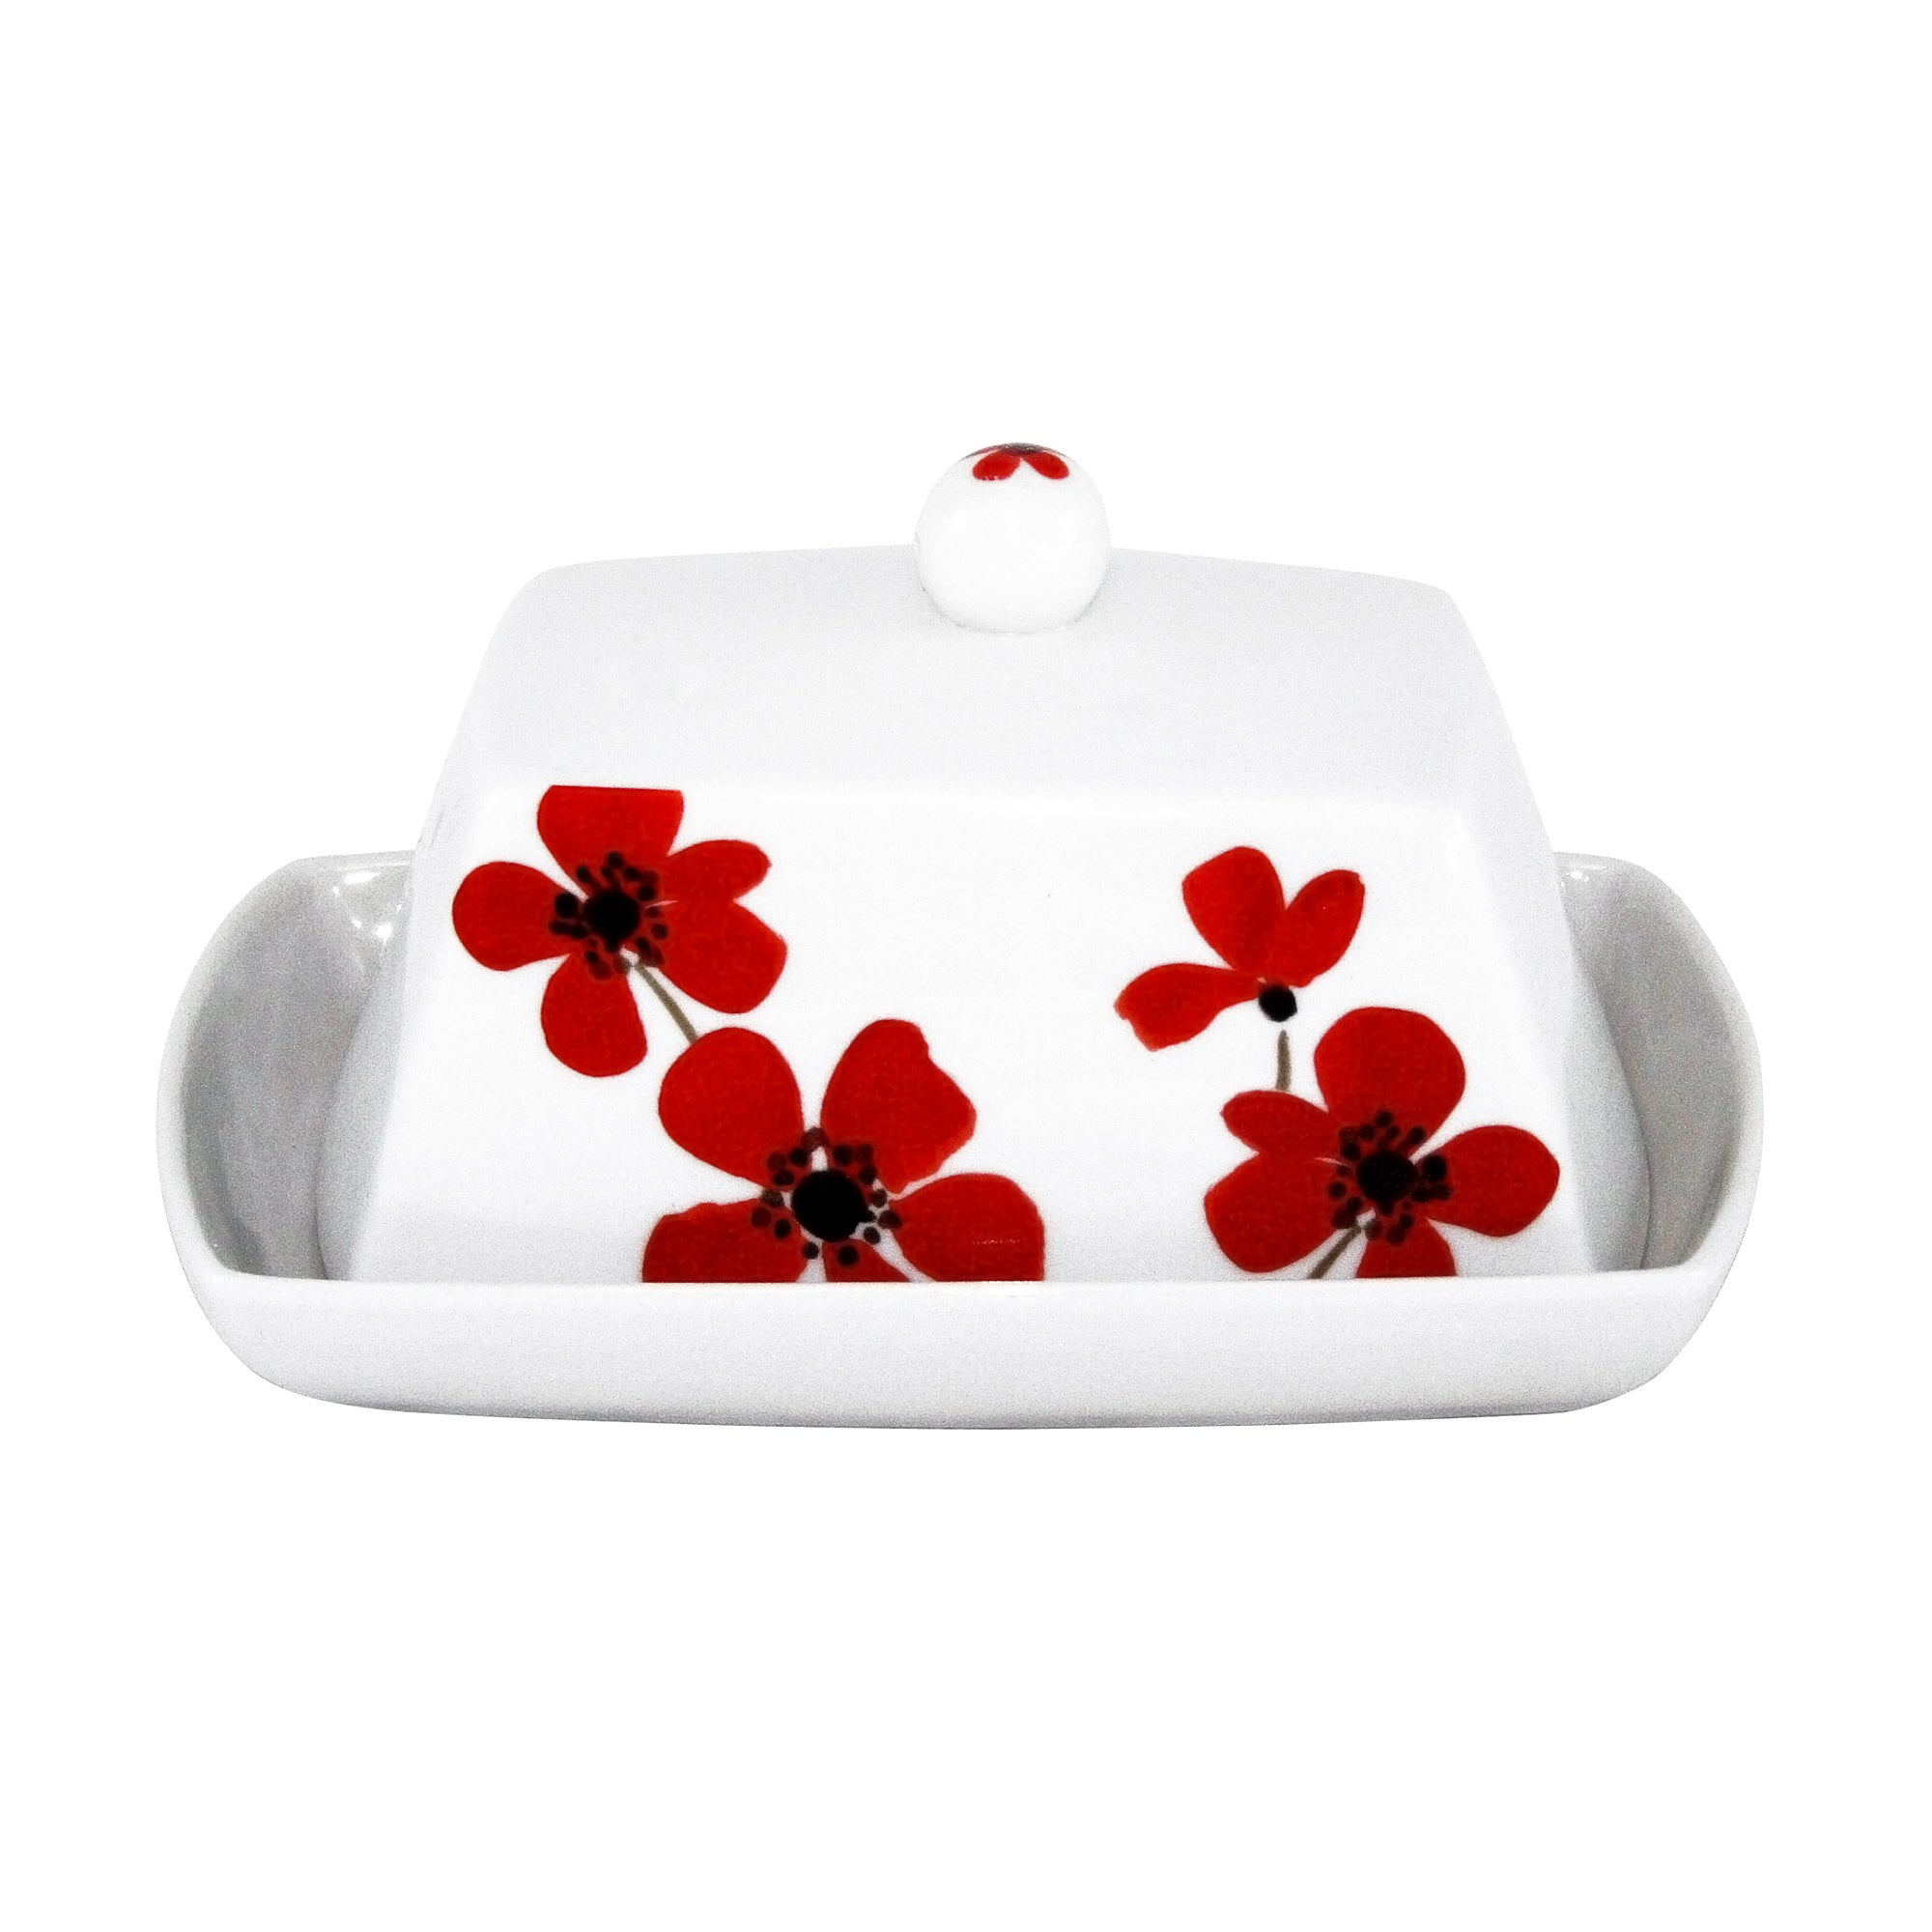 Red Painted Poppy Collection Butter Dish